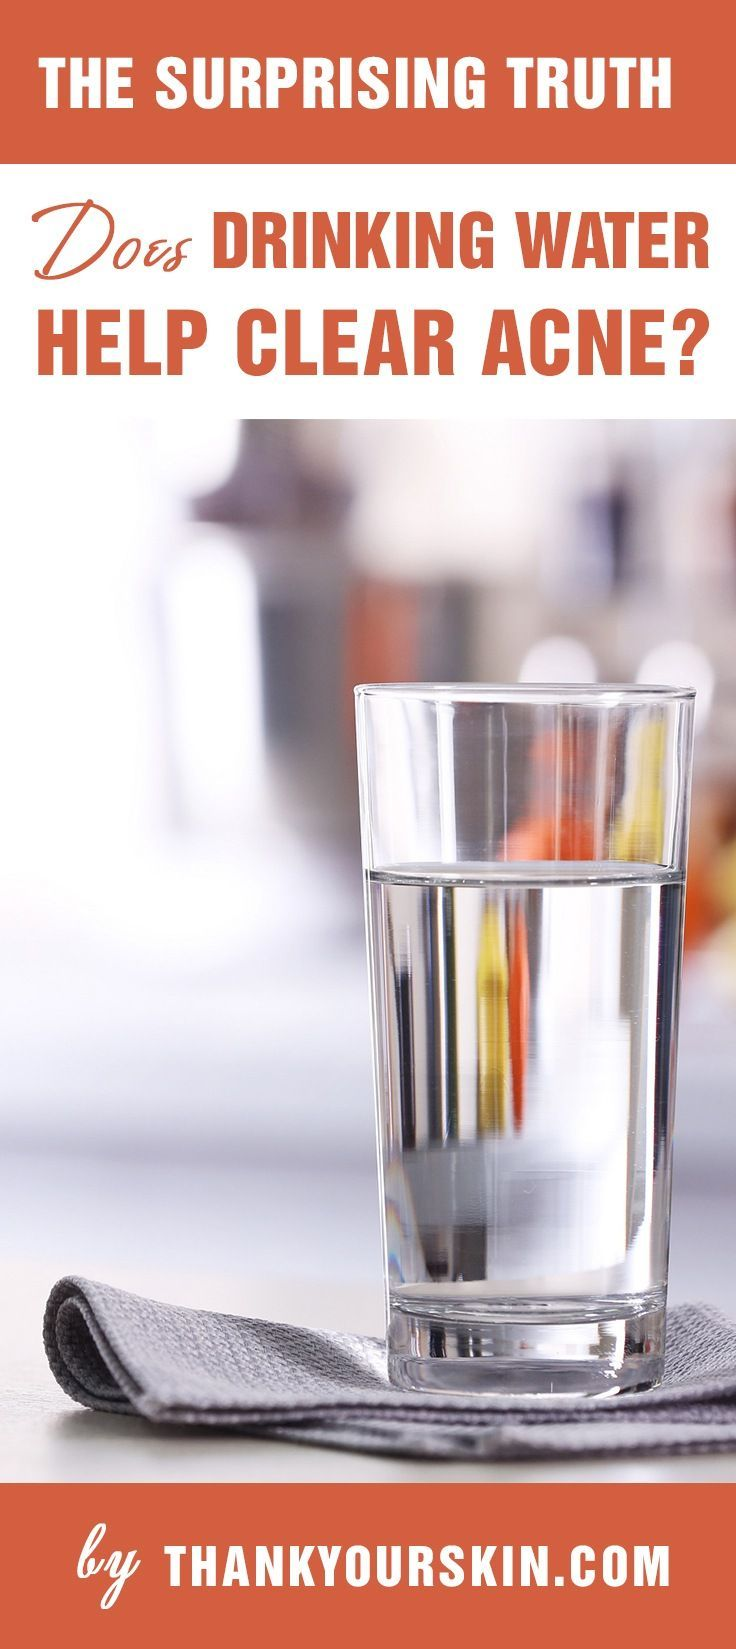 Does Drinking Water Help Clear Acne? (Hint: Yes!)